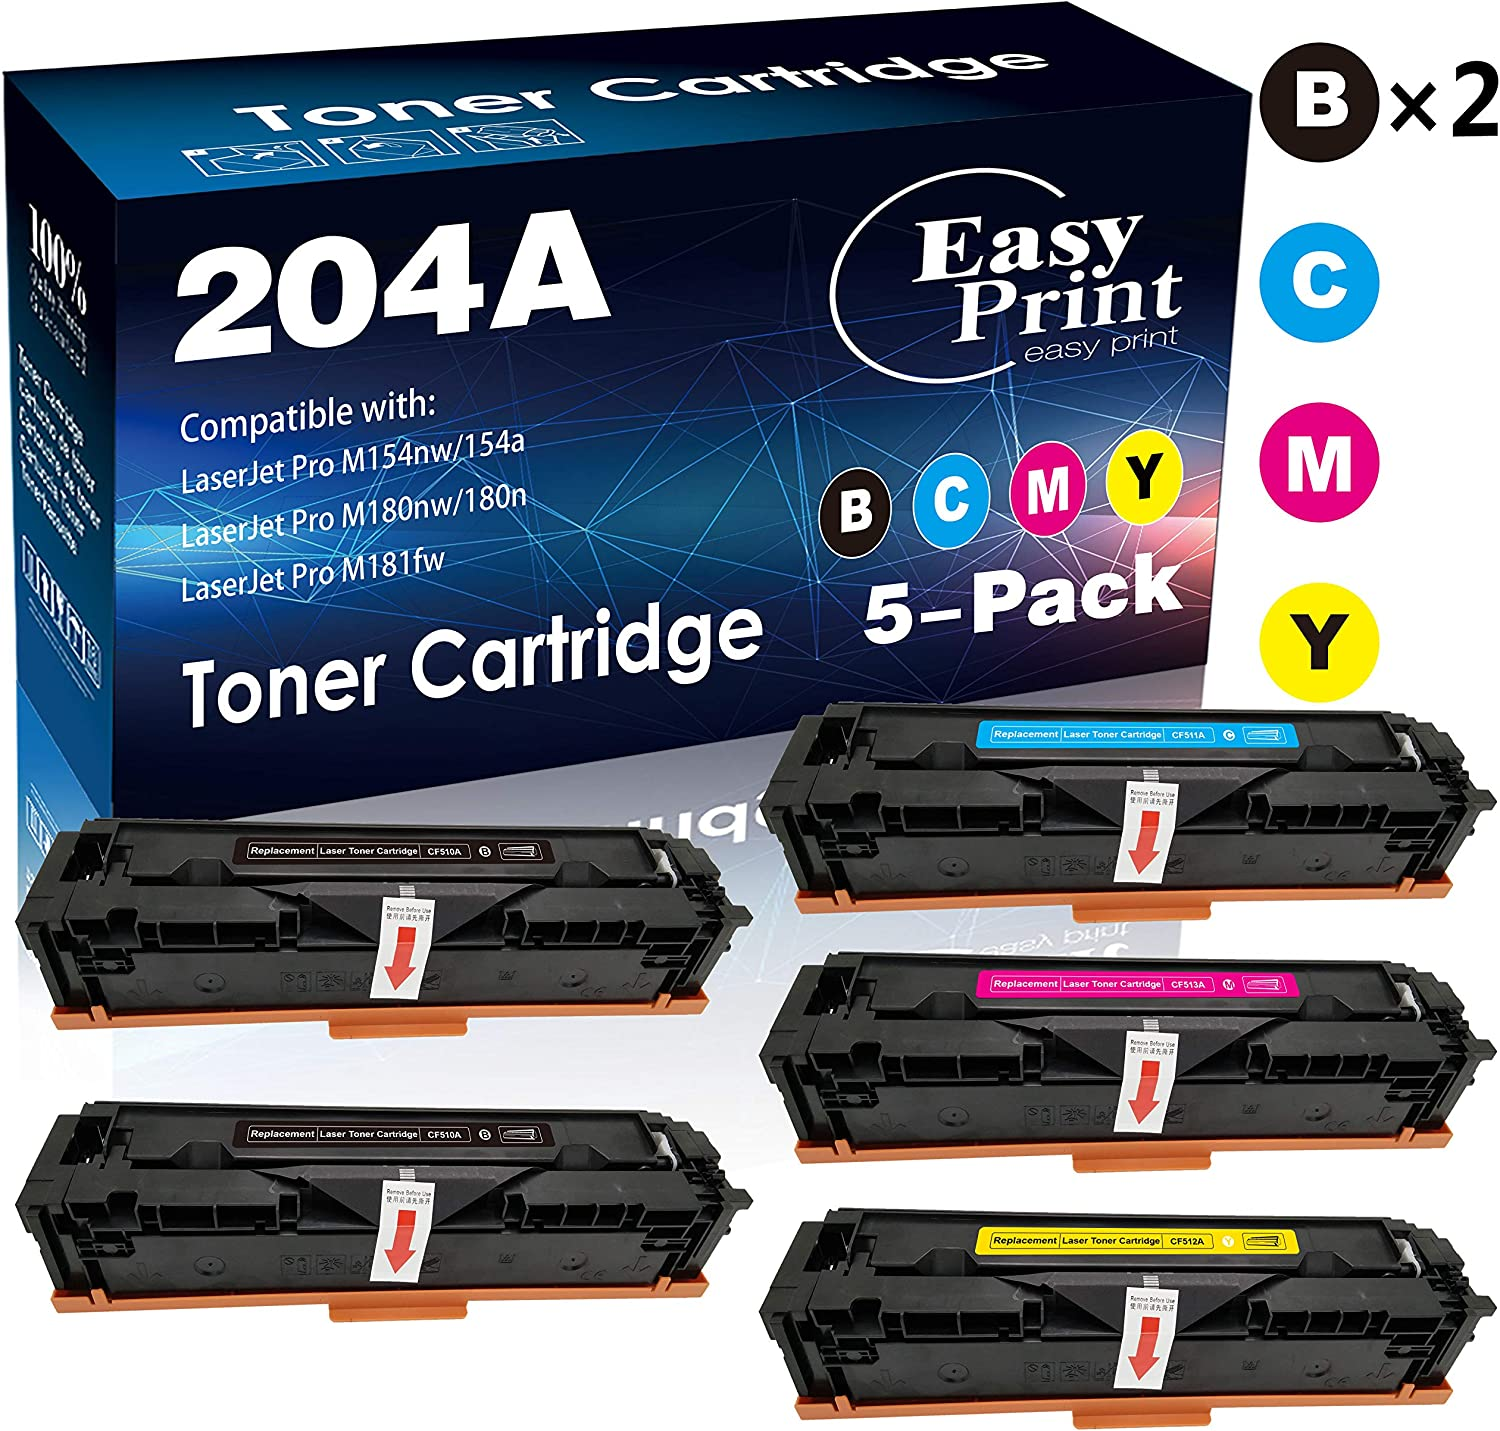 (5-Pack, 2xBK+C+M+Y) Compatible 204A Toner Cartridge 204A Used for HP CF510A CF511A CF512A CF513A Laserjet Pro M154nw M154a M180nw M180n M181fw Printer, by EasyPrint